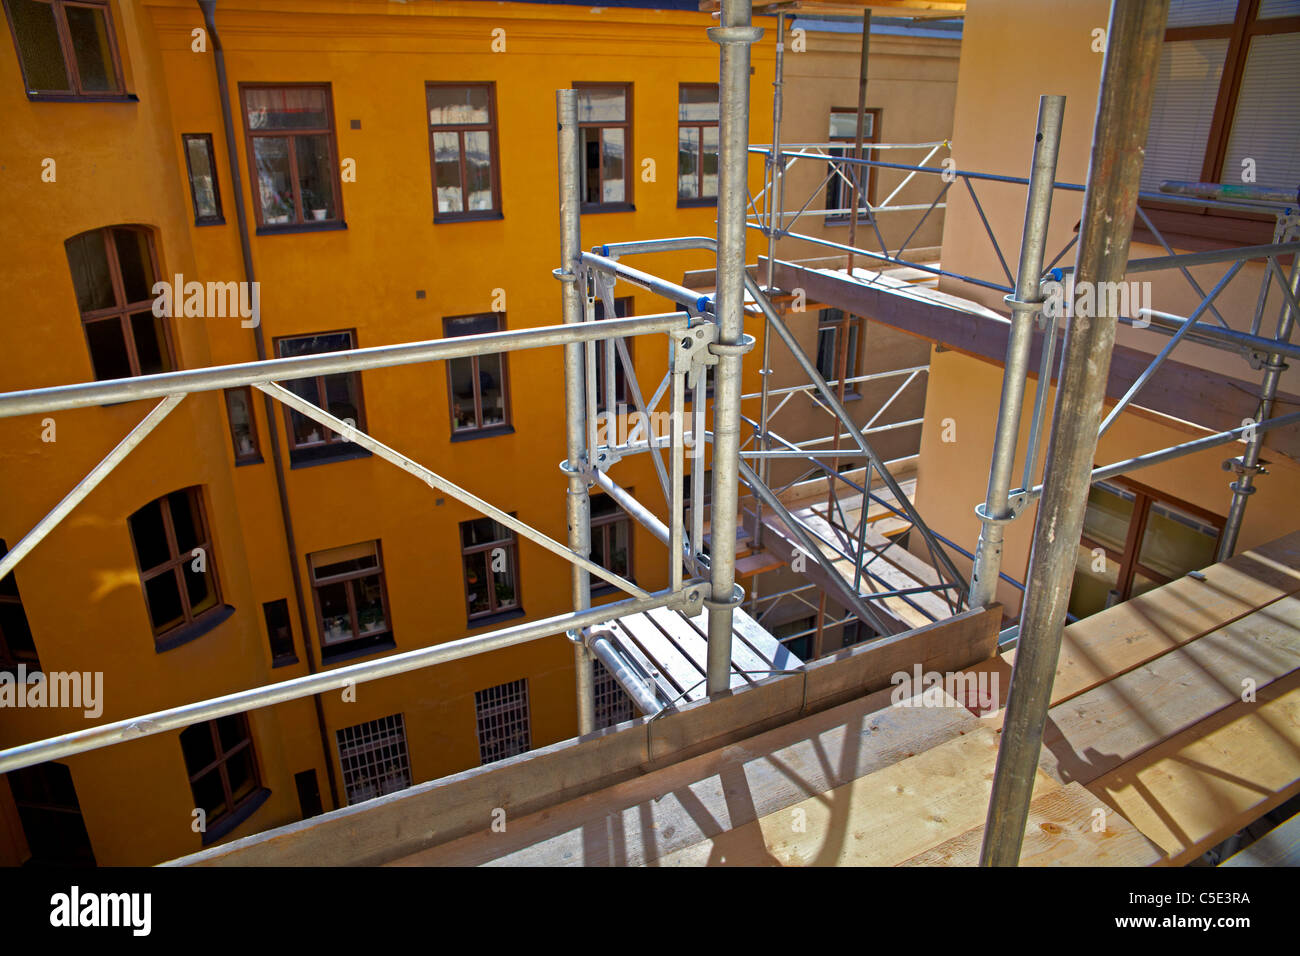 Close-up of scaffolding against building during renovation - Stock Image